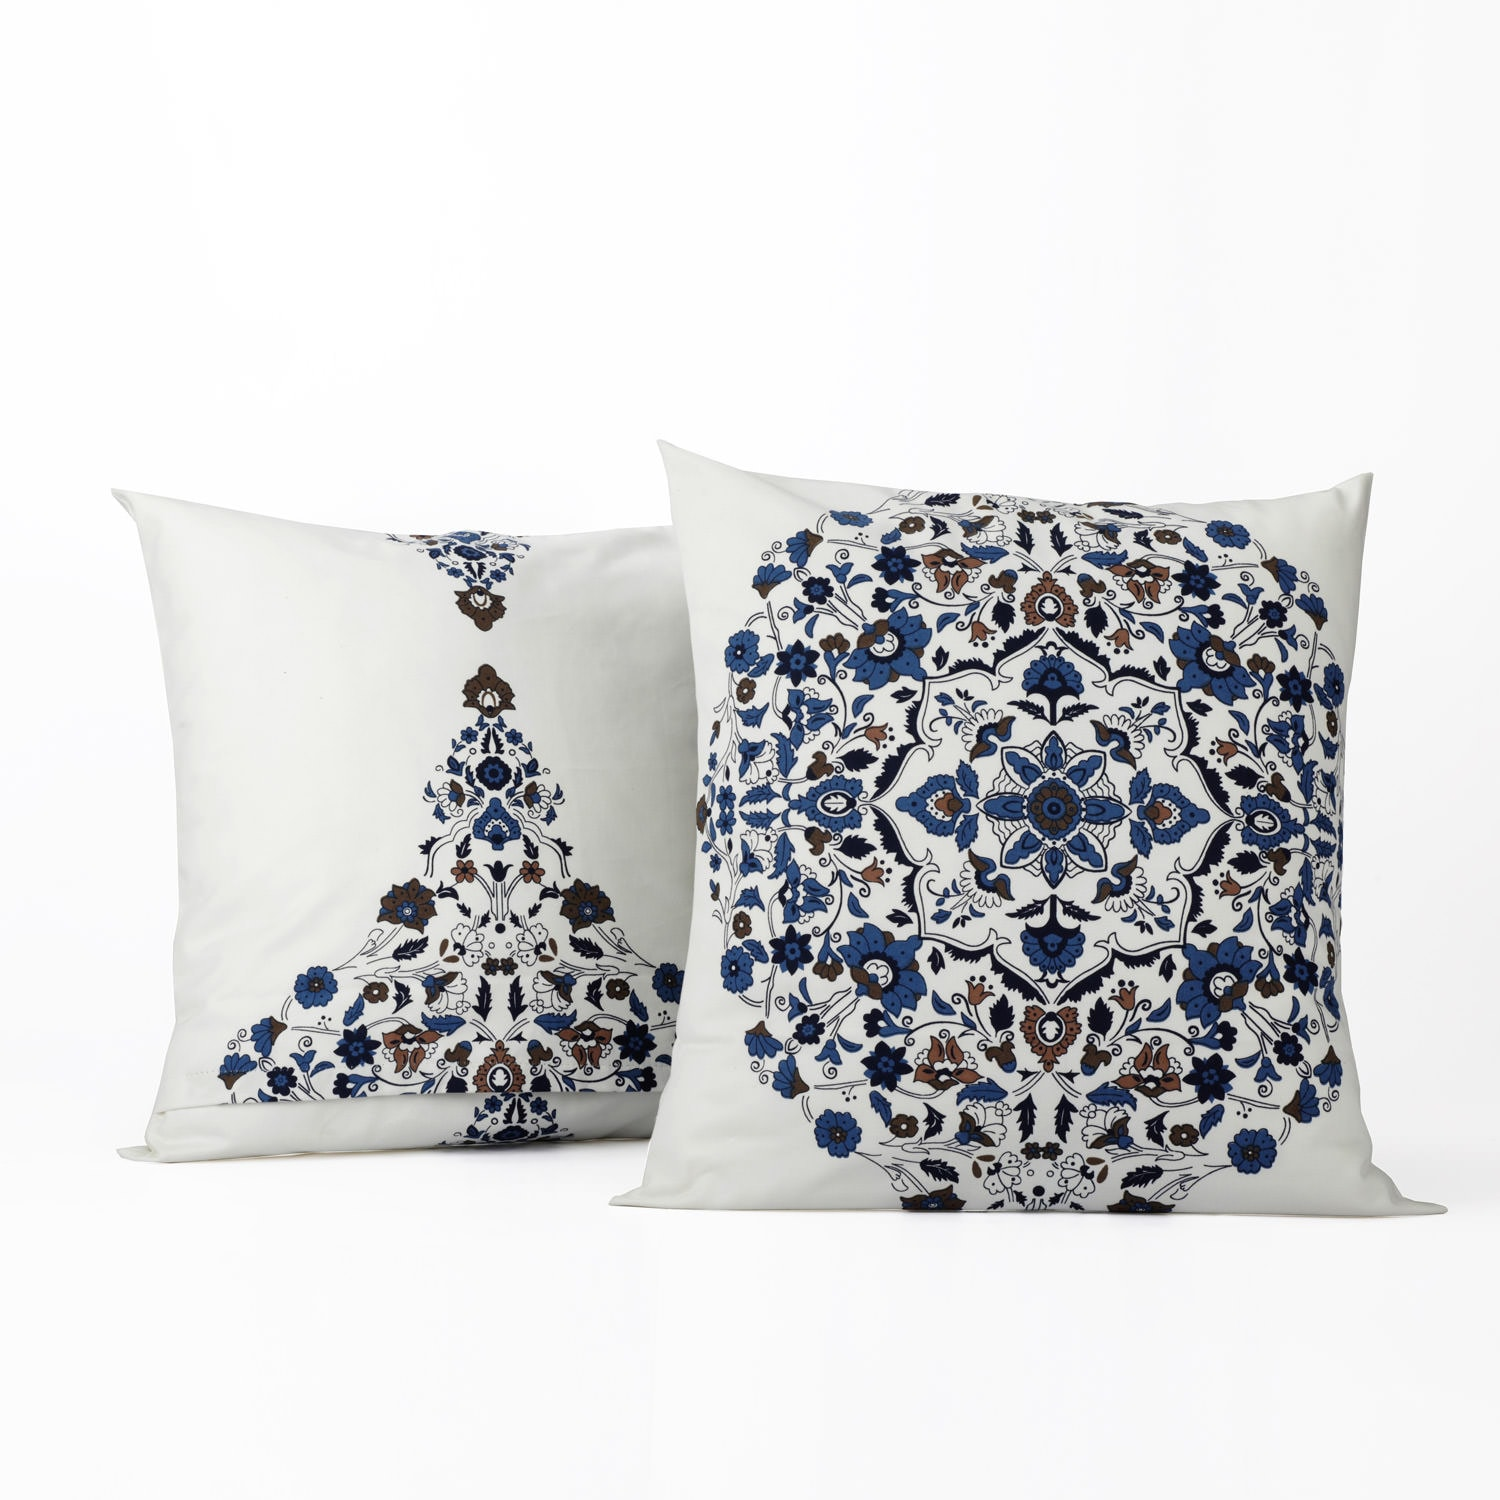 Kerala Blue Printed Cotton Cushion Covers - PAIR